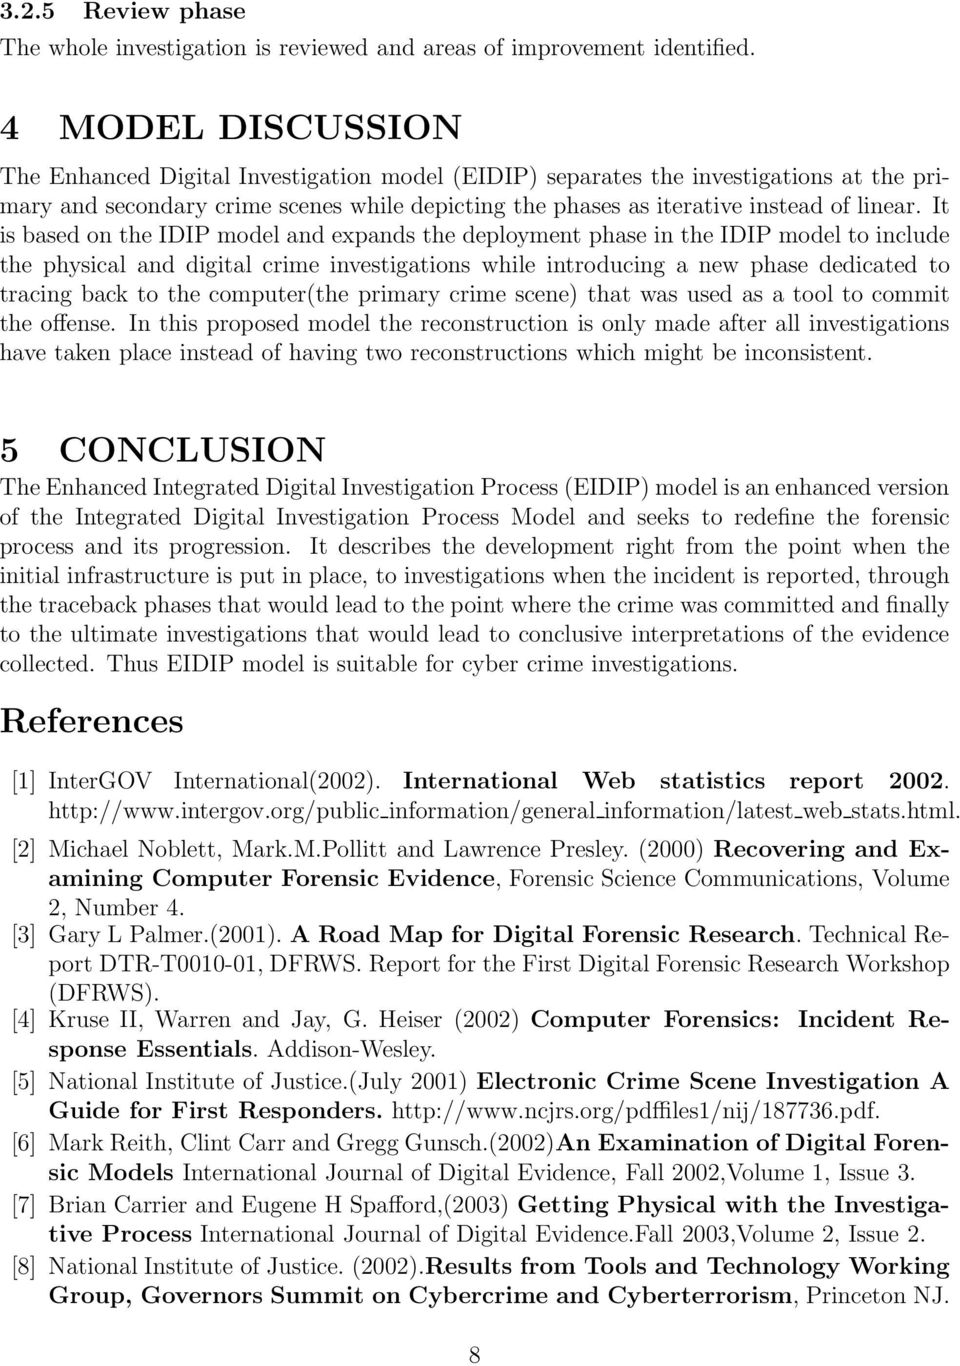 It is based on the IDIP model and expands the deployment phase in the IDIP model to include the physical and digital crime investigations while introducing a new phase dedicated to tracing back to